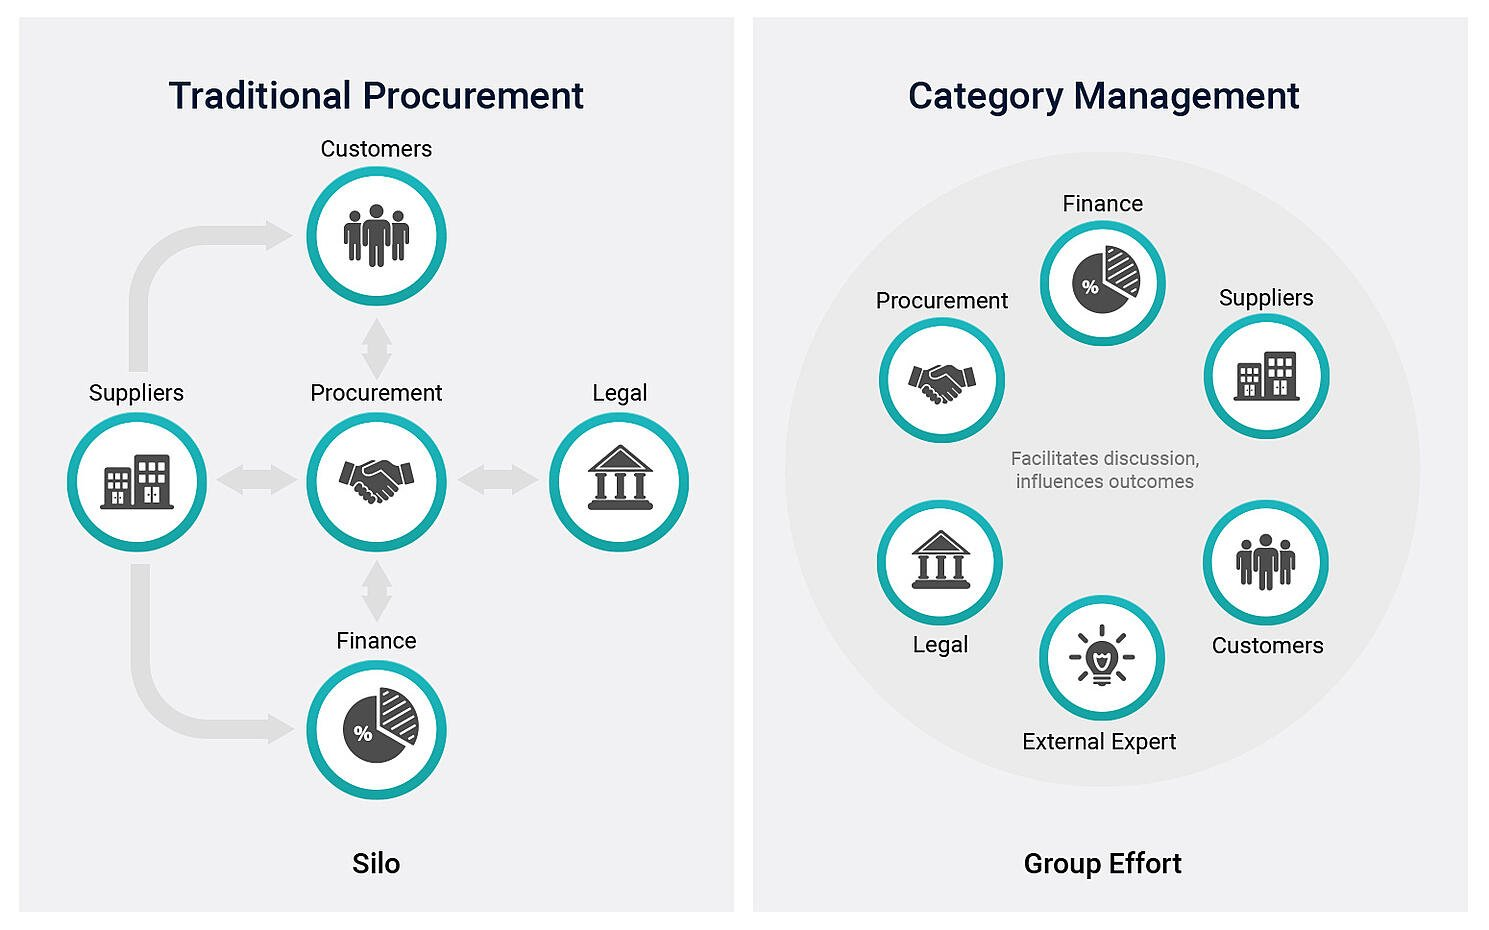 Category Management vs Traditional Procurement